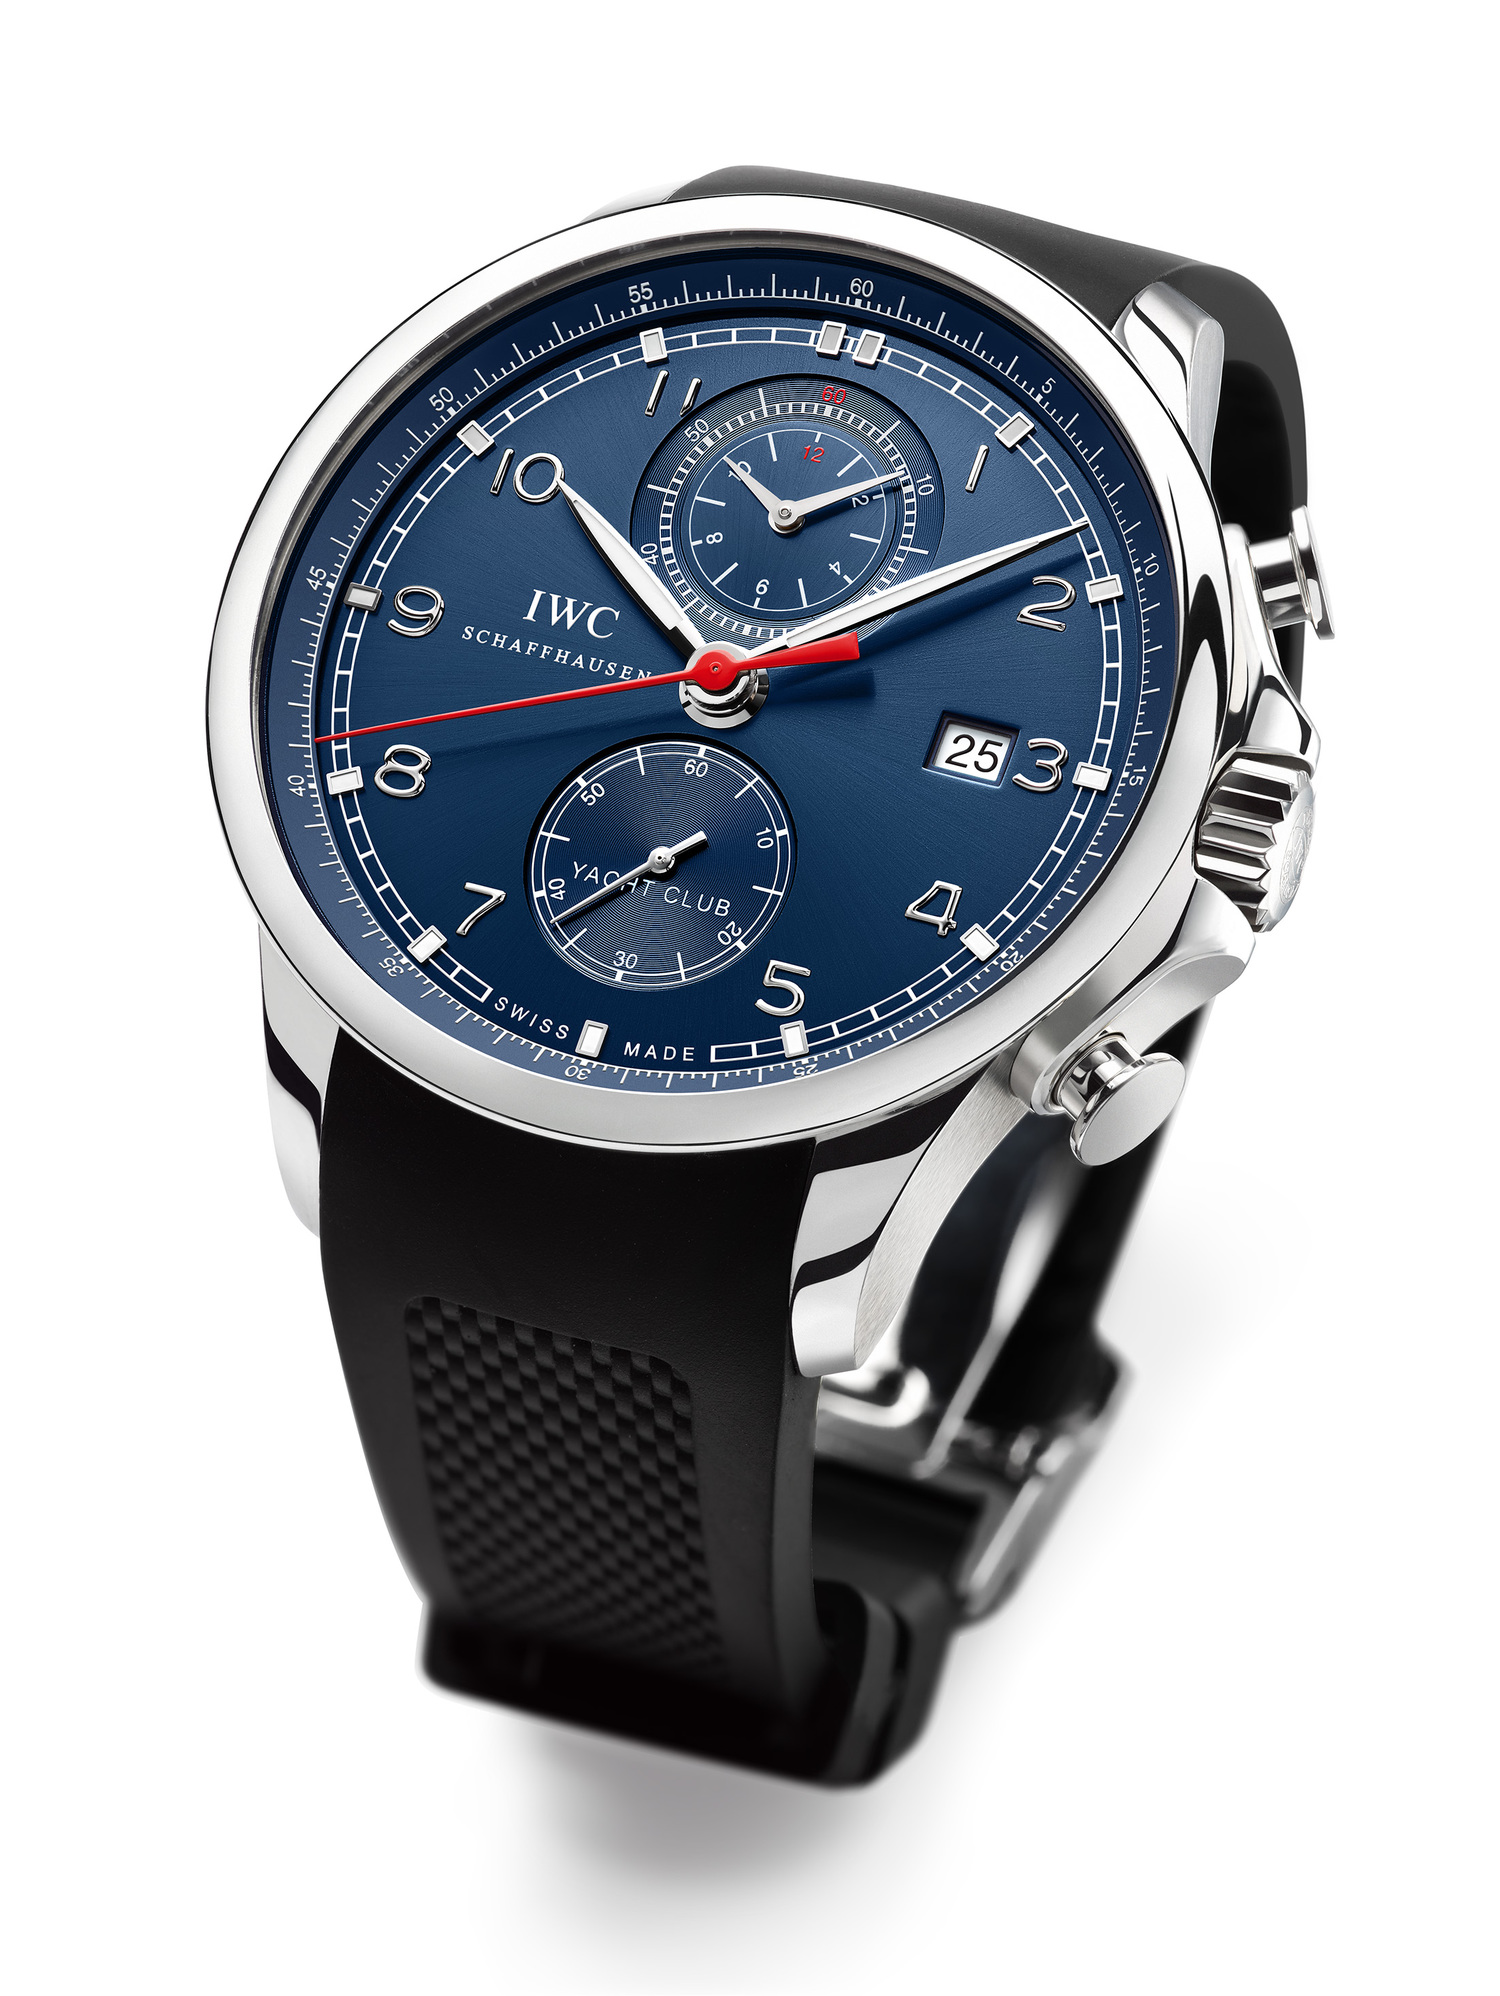 iwc introduces the portuguese yacht club chronograph